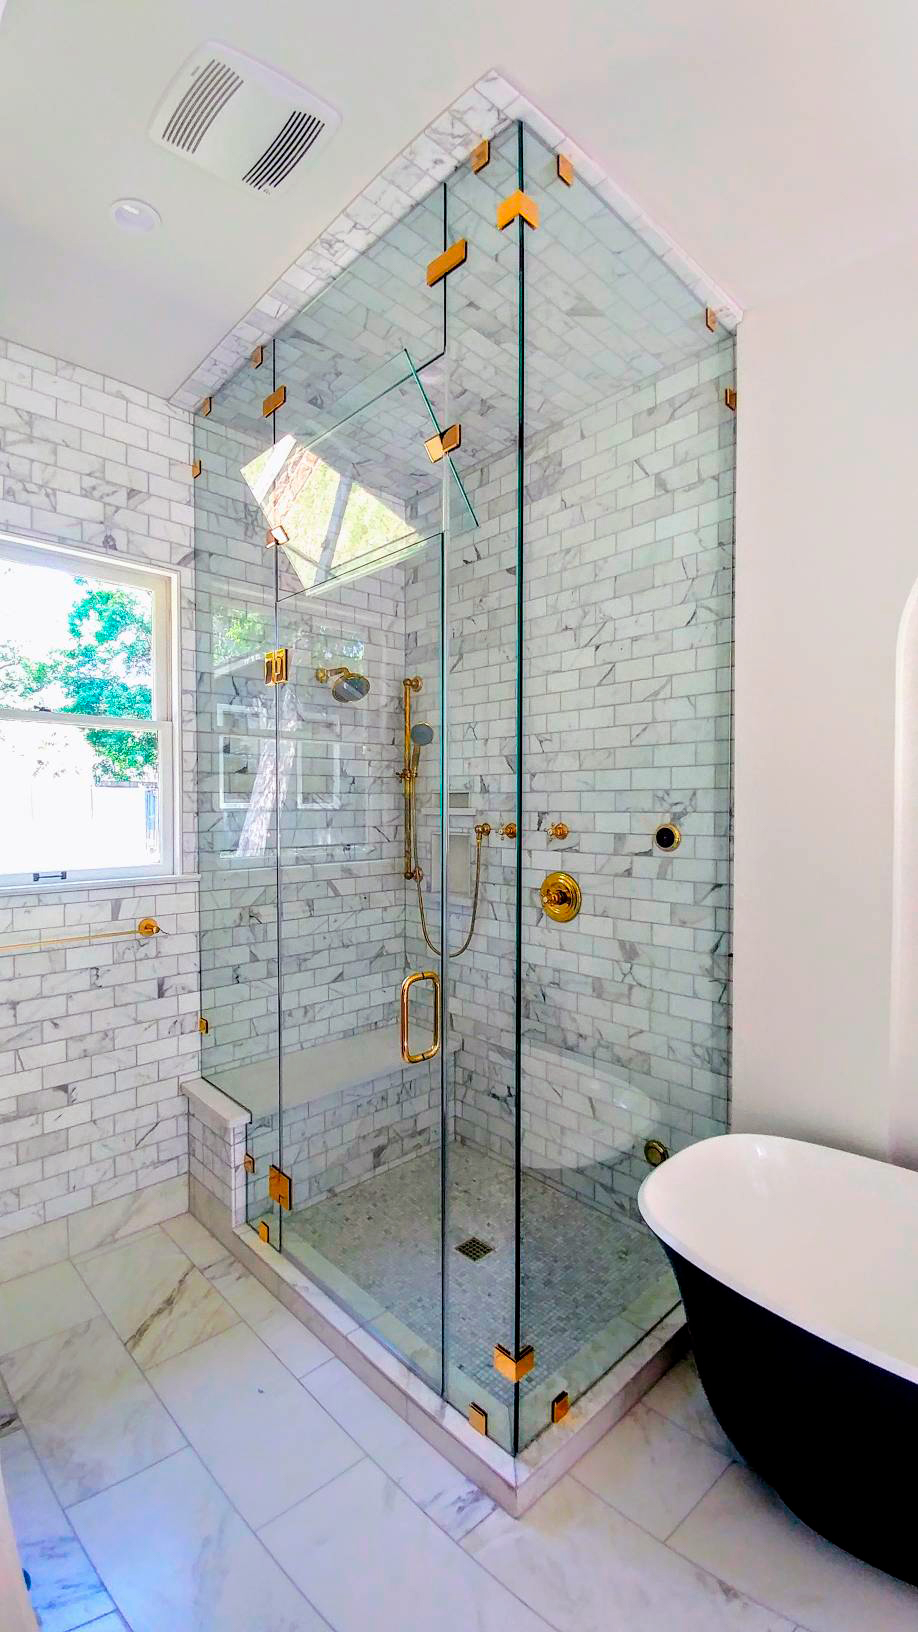 Capstone-Austin-Steam-Shower-Install-5-15-18.jpg